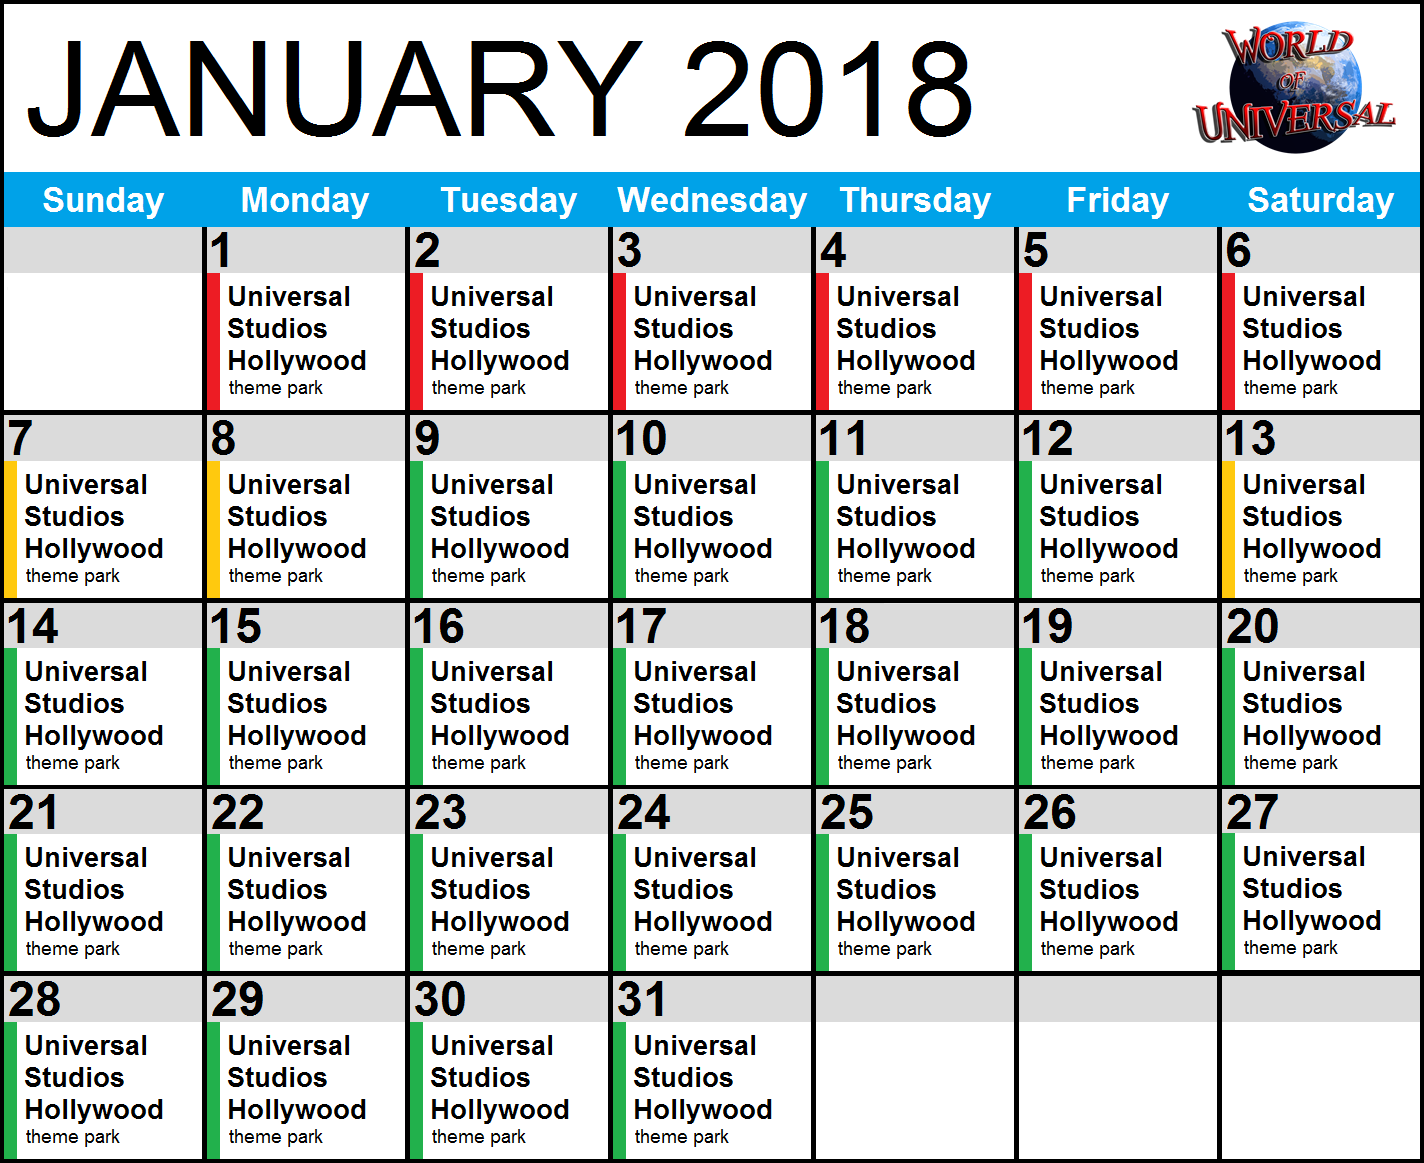 Use our FREE crowd calendar, designed specifically for Universal